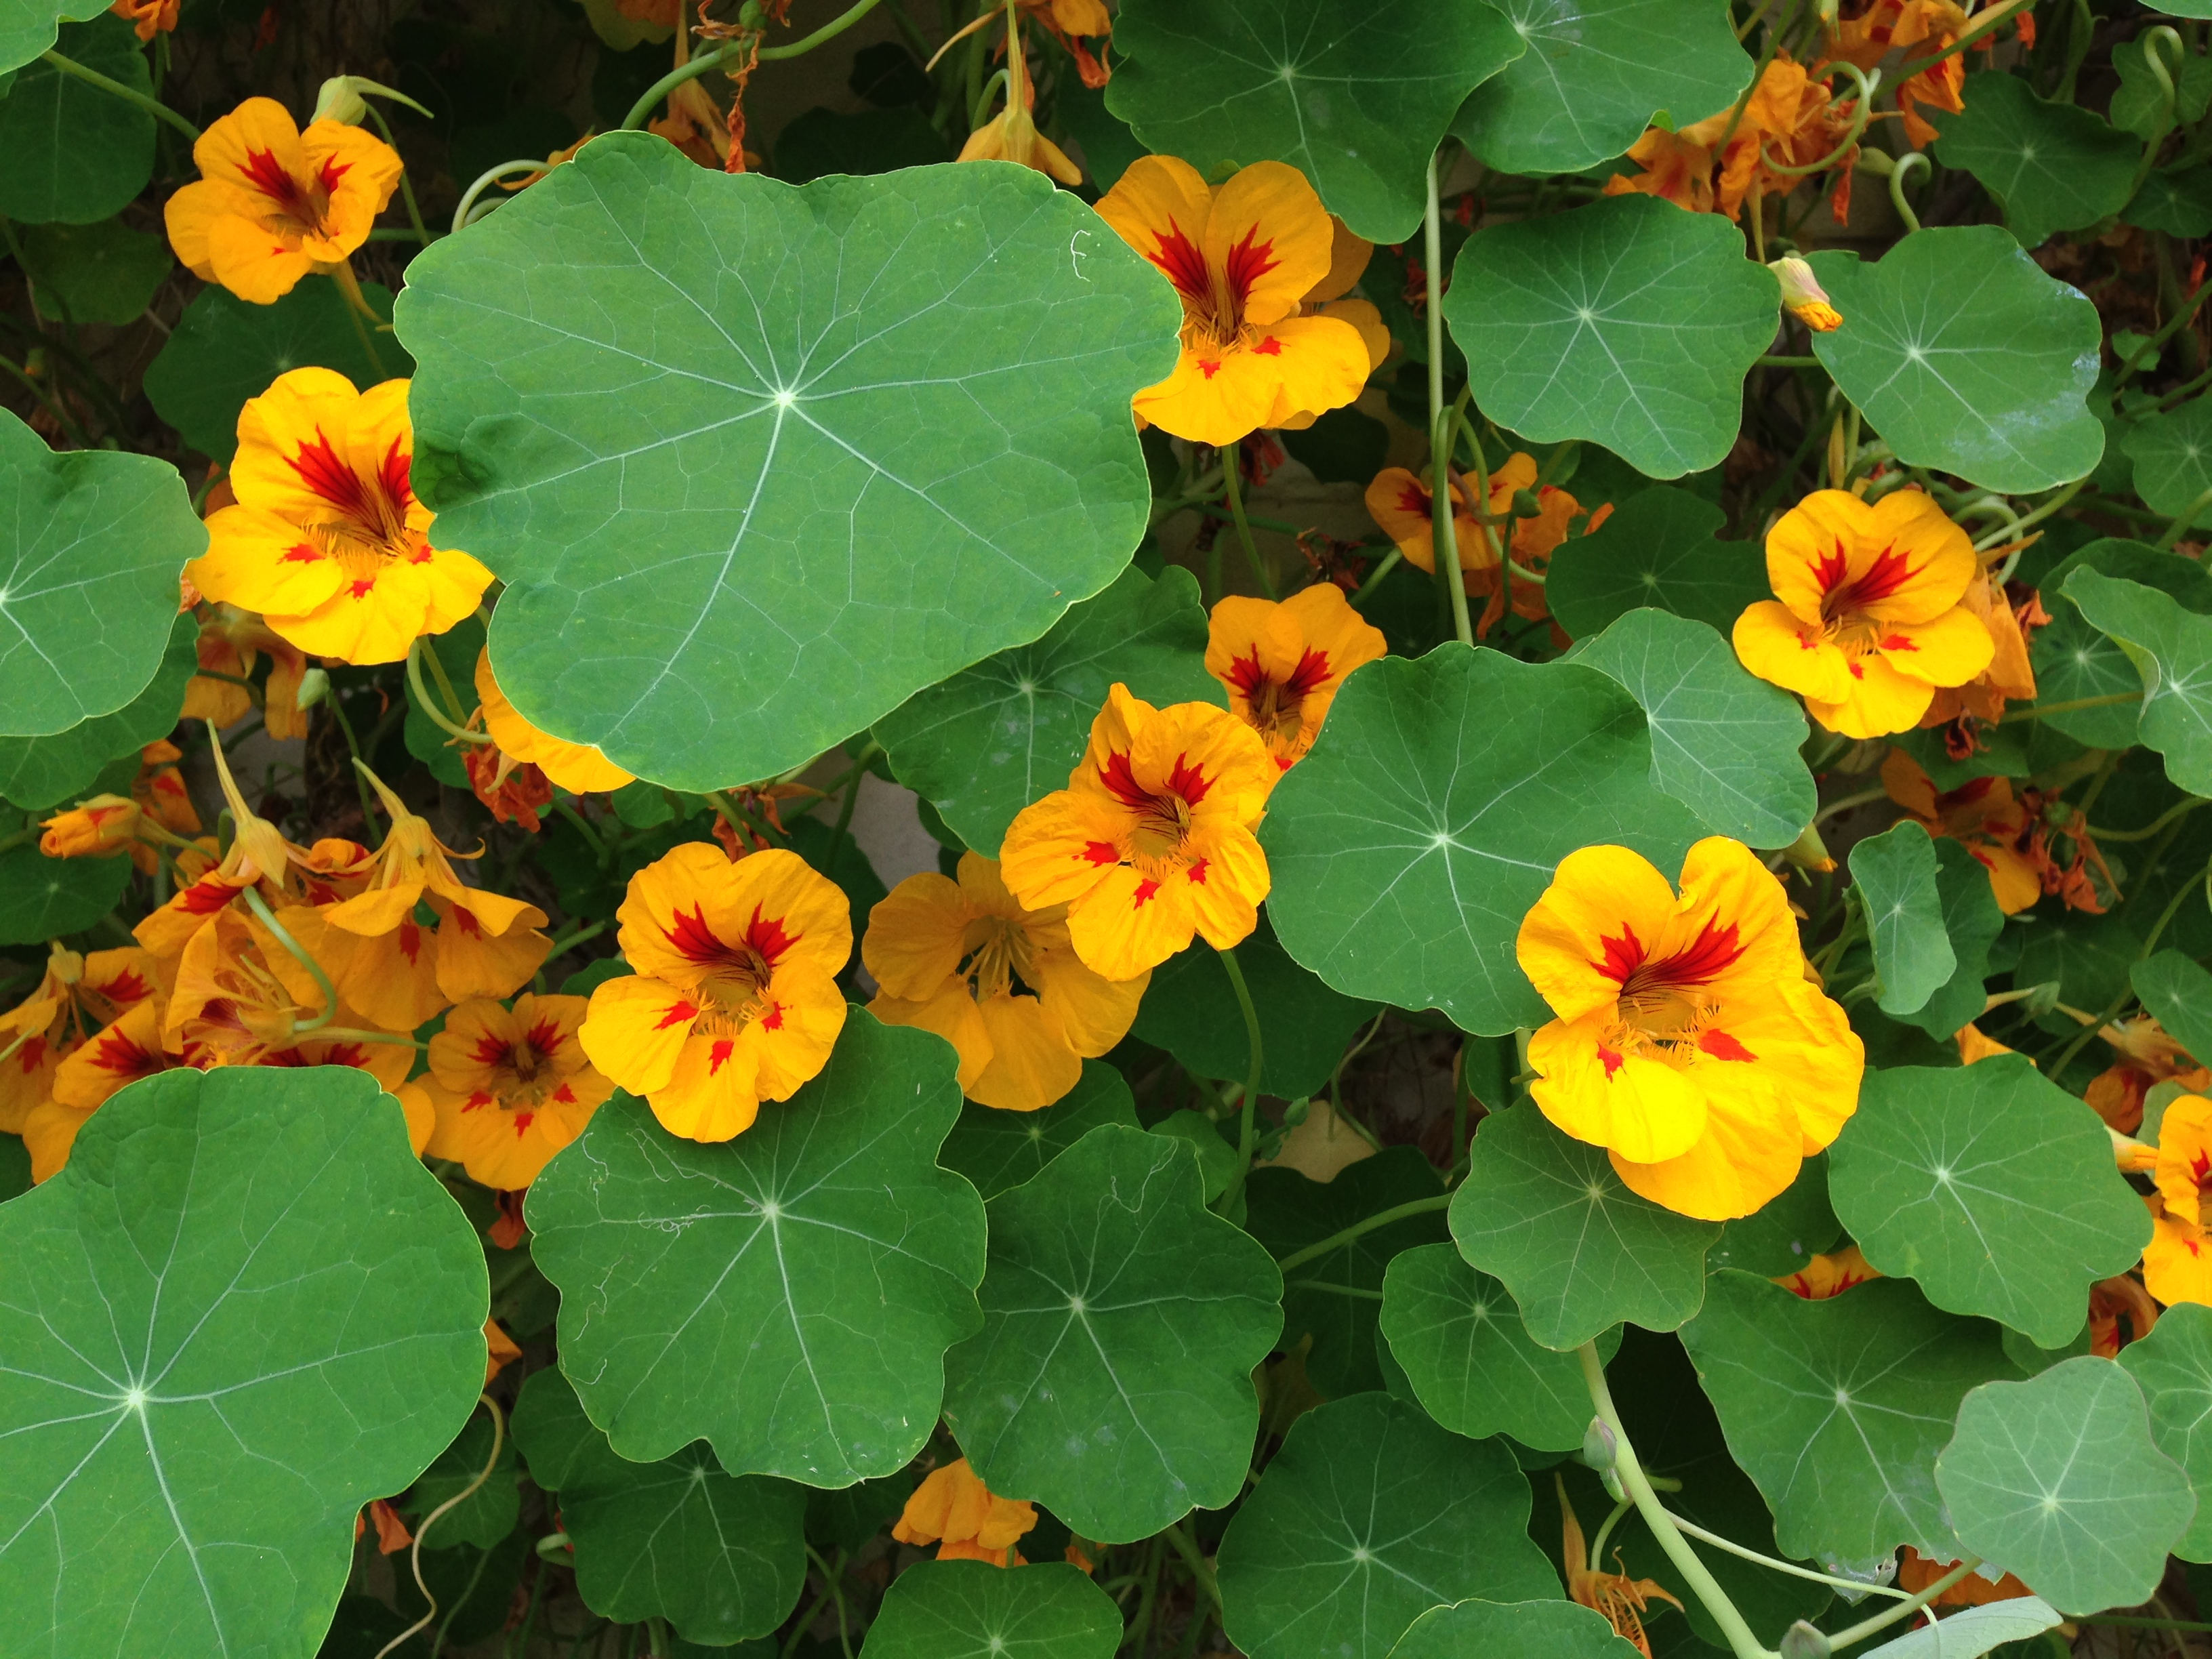 Yellow_and_red_Tropaeolum_majus_(Garden_nasturtium) by Mary Hutchison via Wikimedia